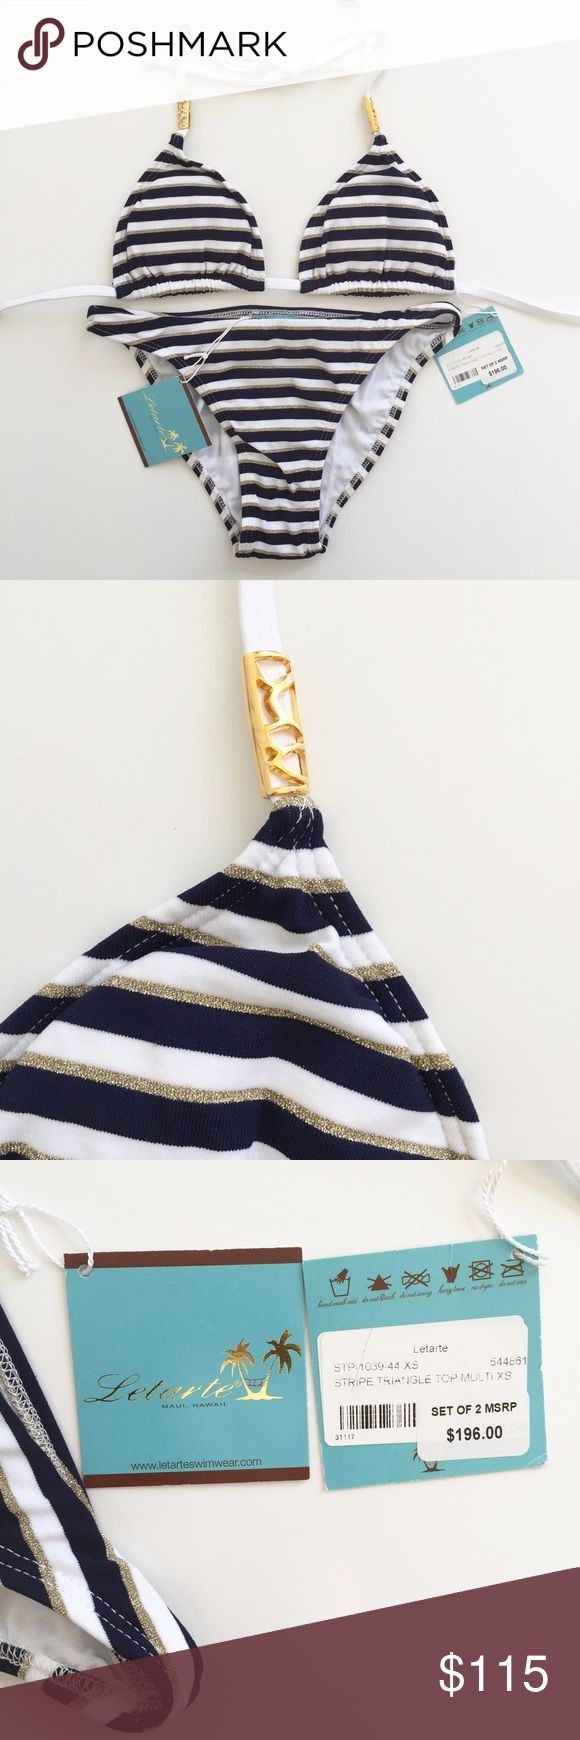 NWT Letarte Nautical Striped Bikini This printed bikini by Letarte Swimwear is perfect for any beach or pool day!   - Classic nautical navy, white, and metallic gold stripes - Triangle cut top features gold toned metal embellishment on each strap that slides and is movable to the end of the string if desired - Bottom provides moderate coverage - Brand new with tags still attached, no flaws  - Hygienic liner is still attached to the bikini bottom  ✅ Bundles ❌ Trades / Swaps / Modeling / Holds…